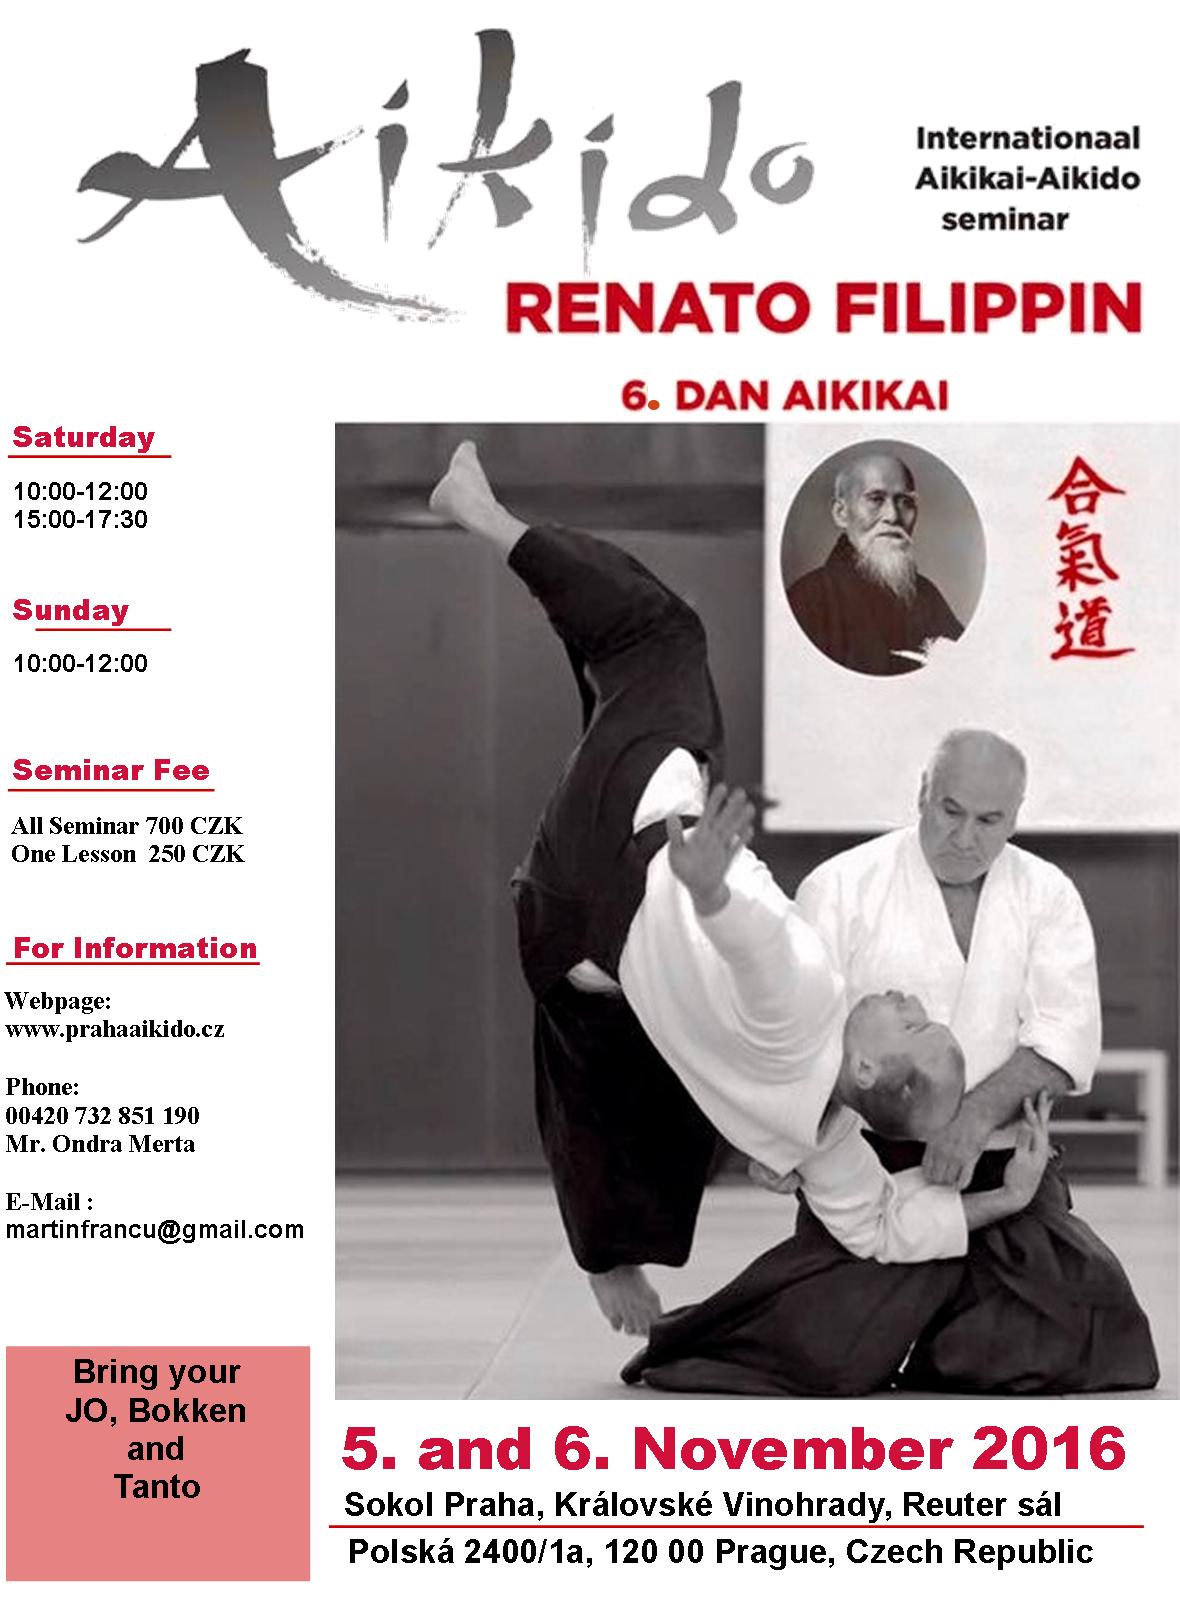 Poster for seminar of Renato Filippin 6. dan Aikido Aikikai in Prague, 5.-6. November 2016